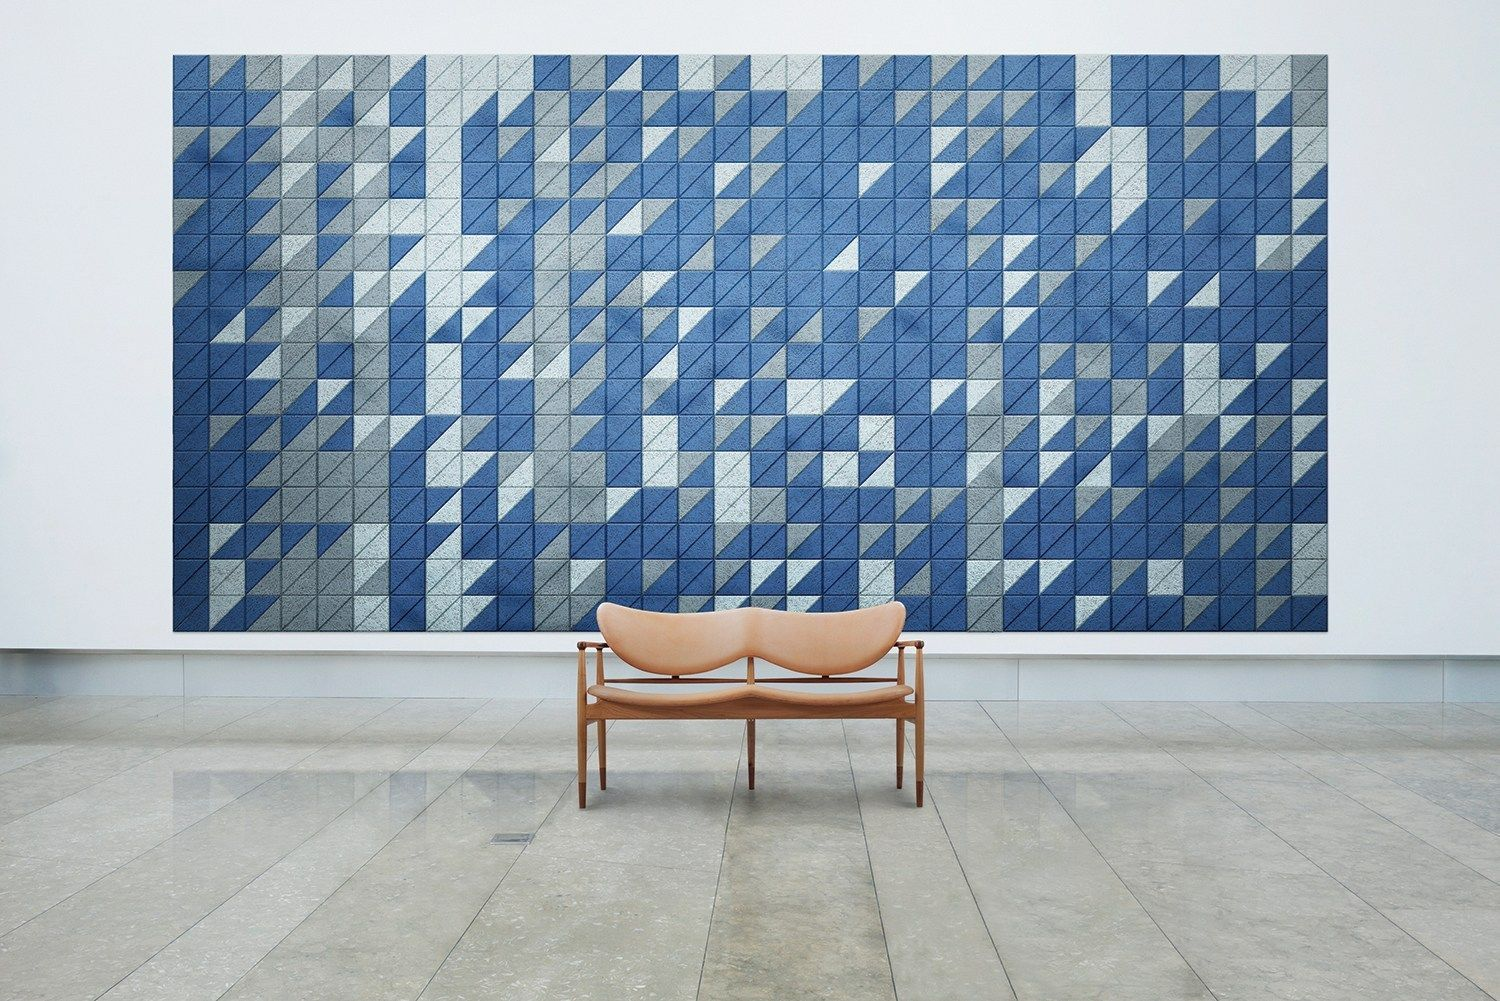 Baux dresses up and colors Workplace 3.0 The acoustic wall tiles and ...